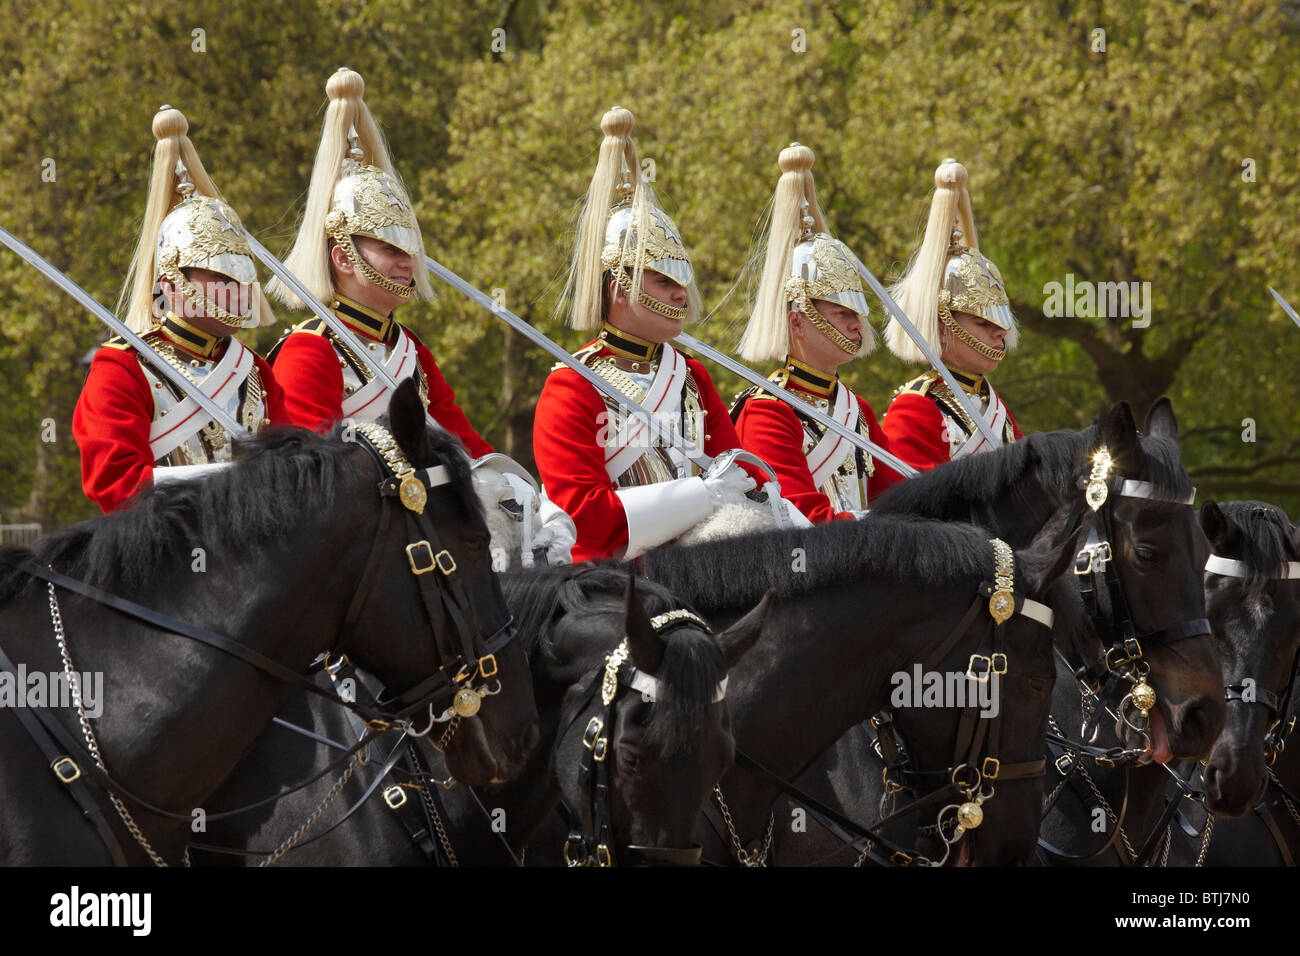 British Household Cavalry (Life Guards Regiment), Changing of the Horse Guards, Horse Guards, London, England, United - Stock Image